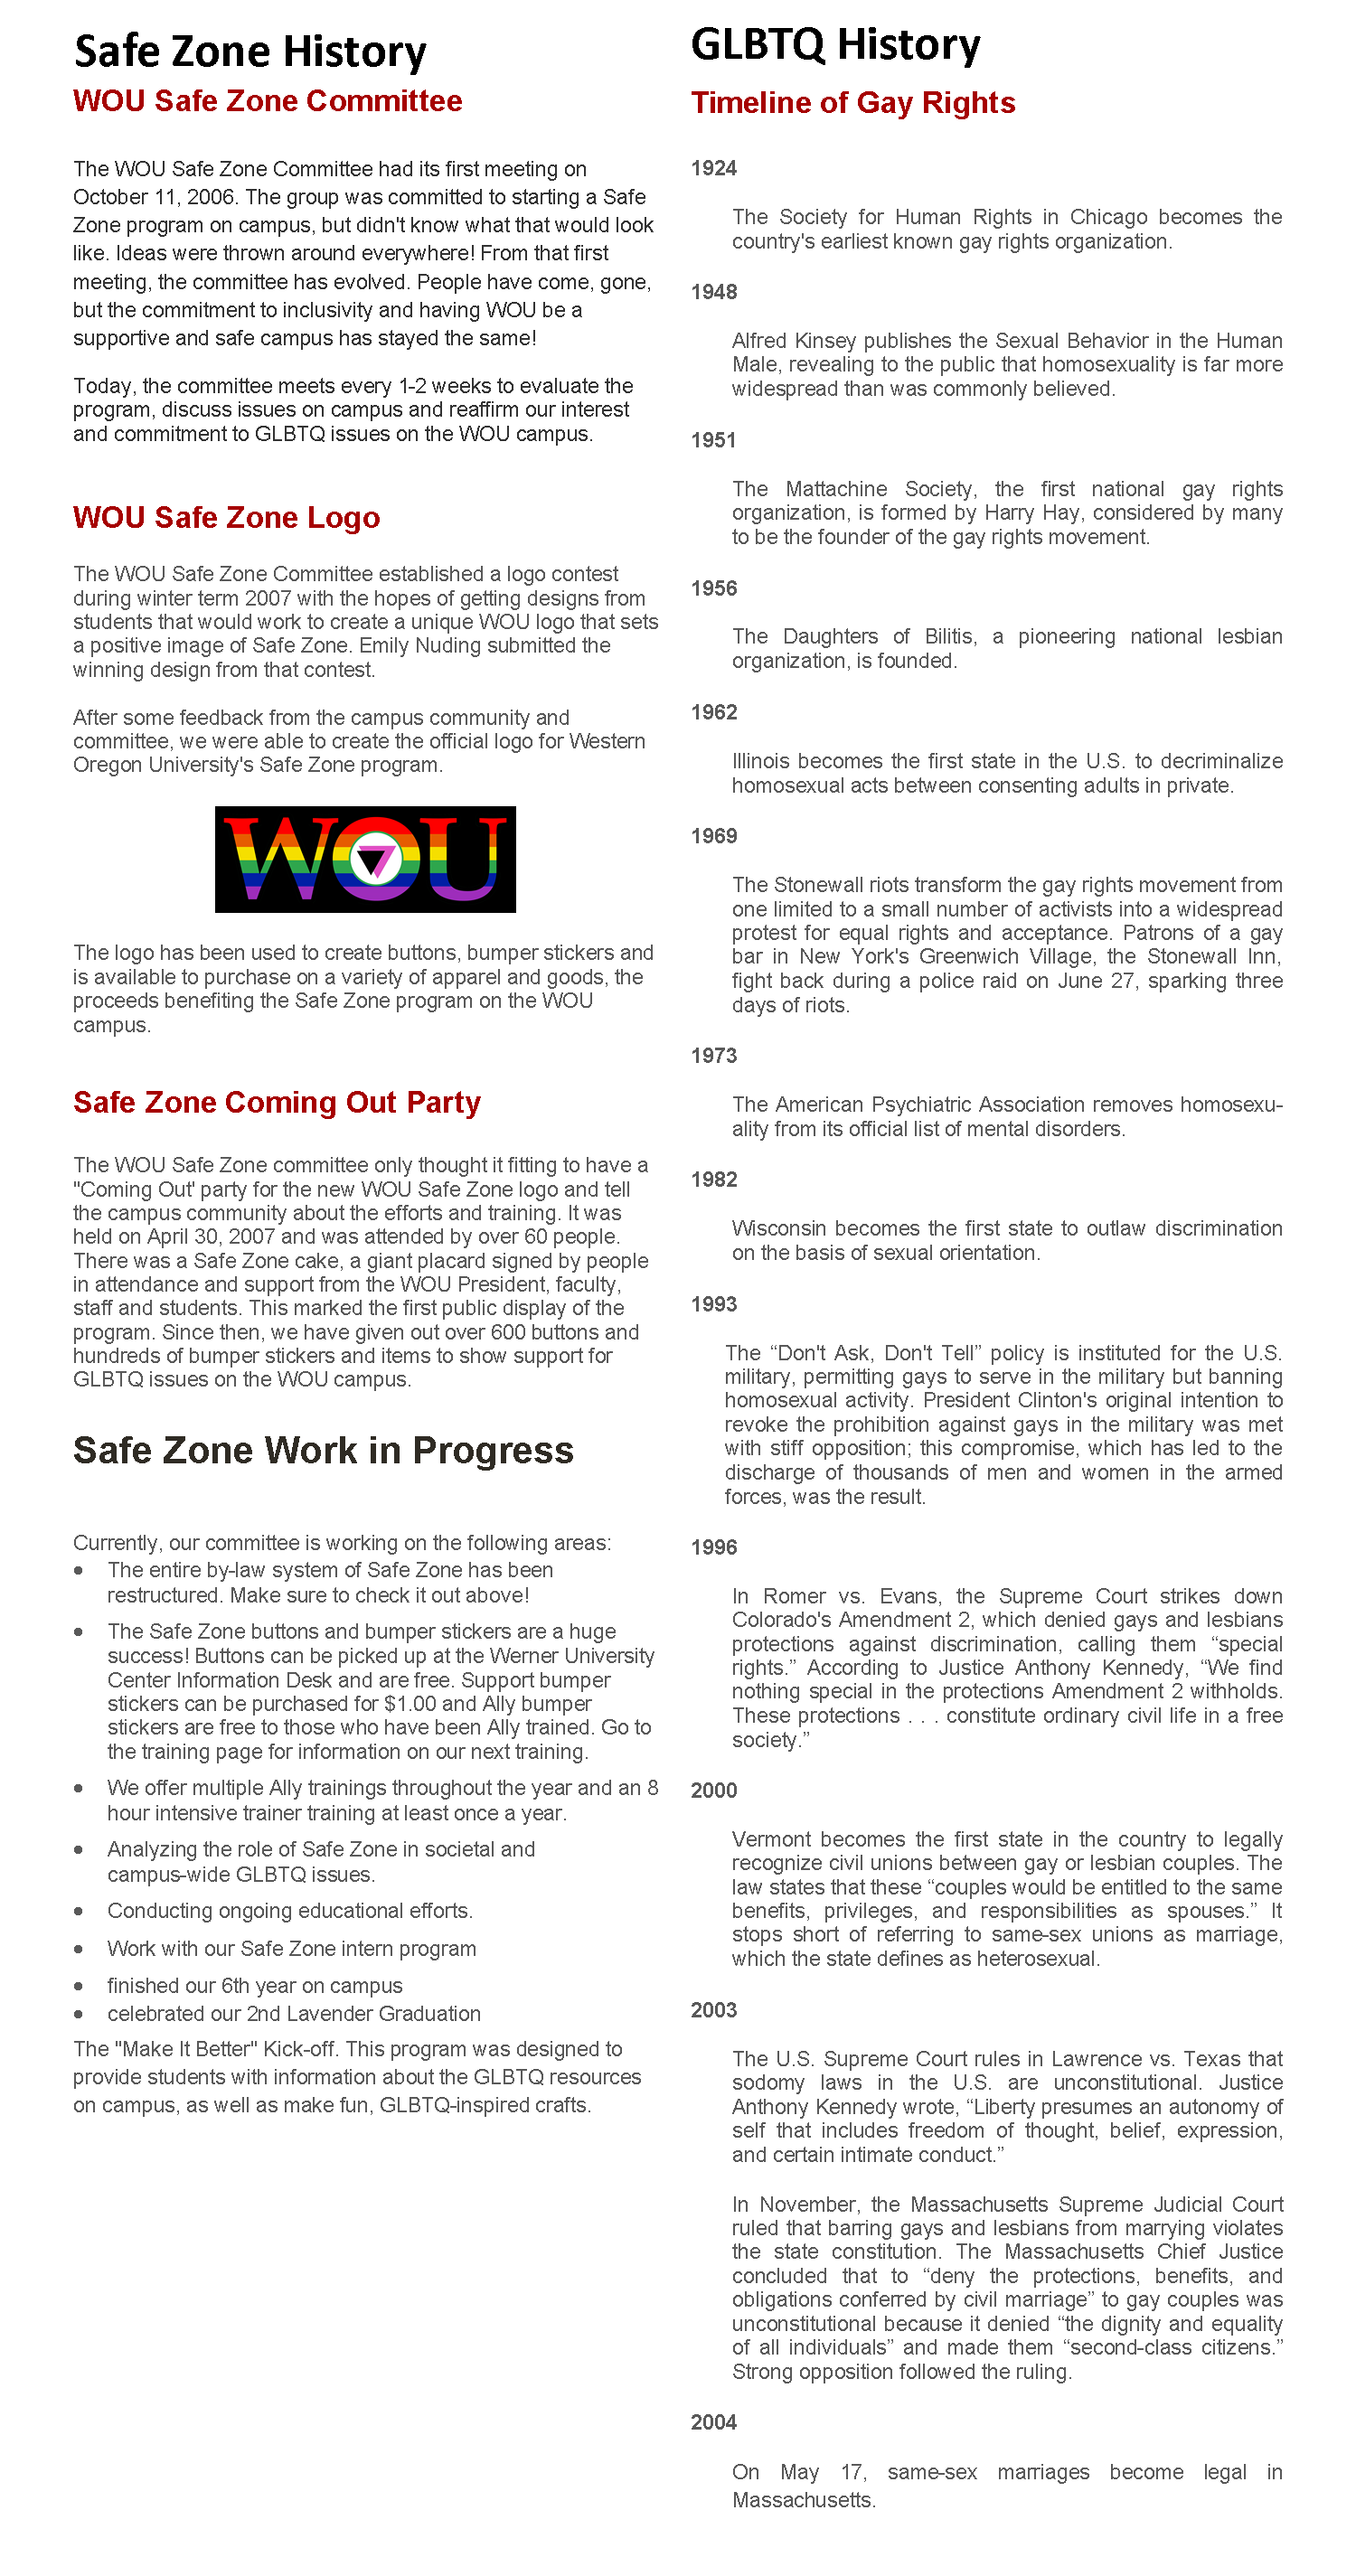 SafeZone History and Work in Progress